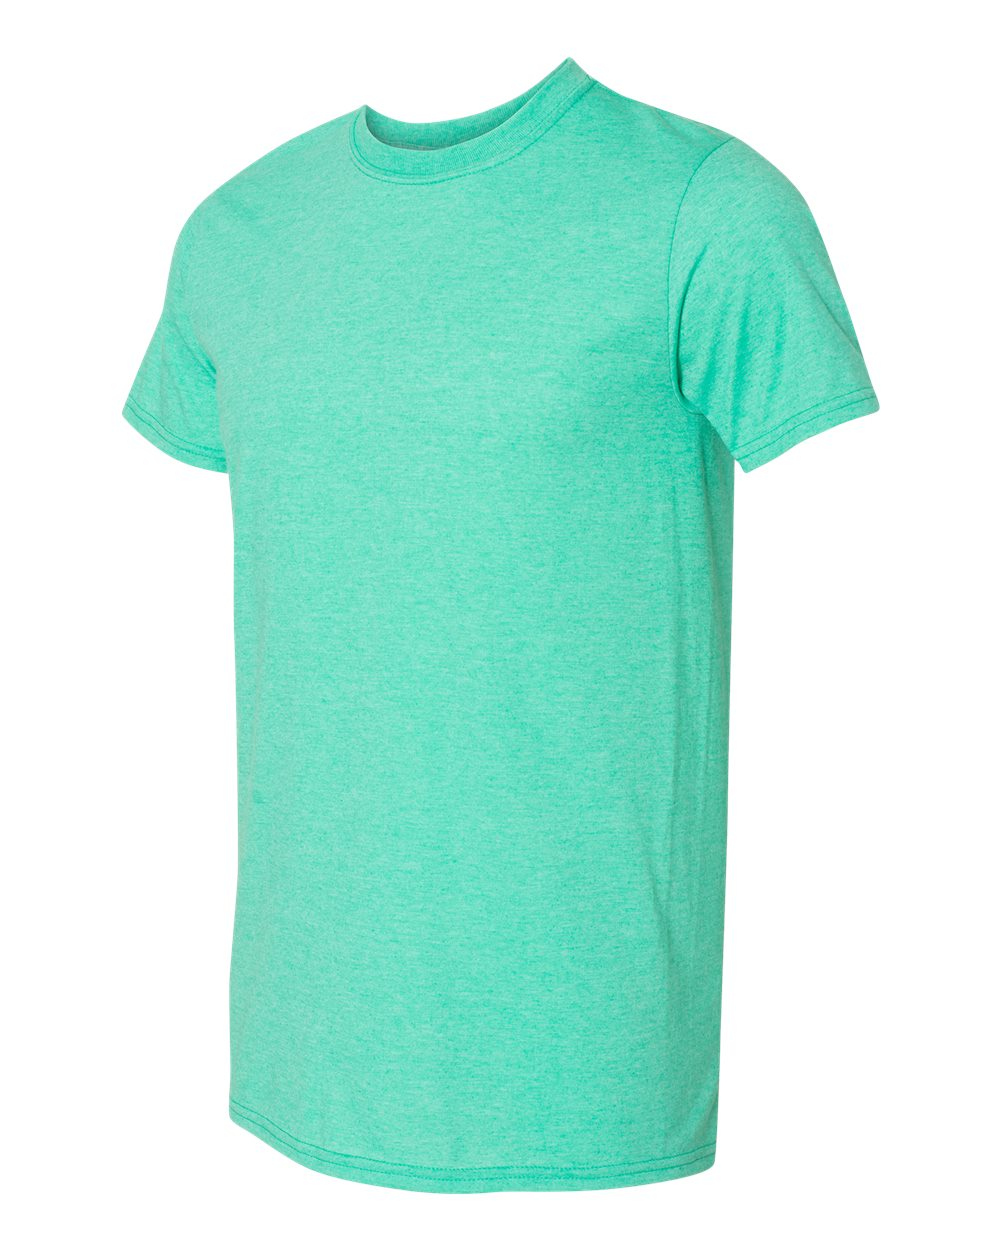 Gildan SoftSytle Cotton 64000 Heather Seafoam